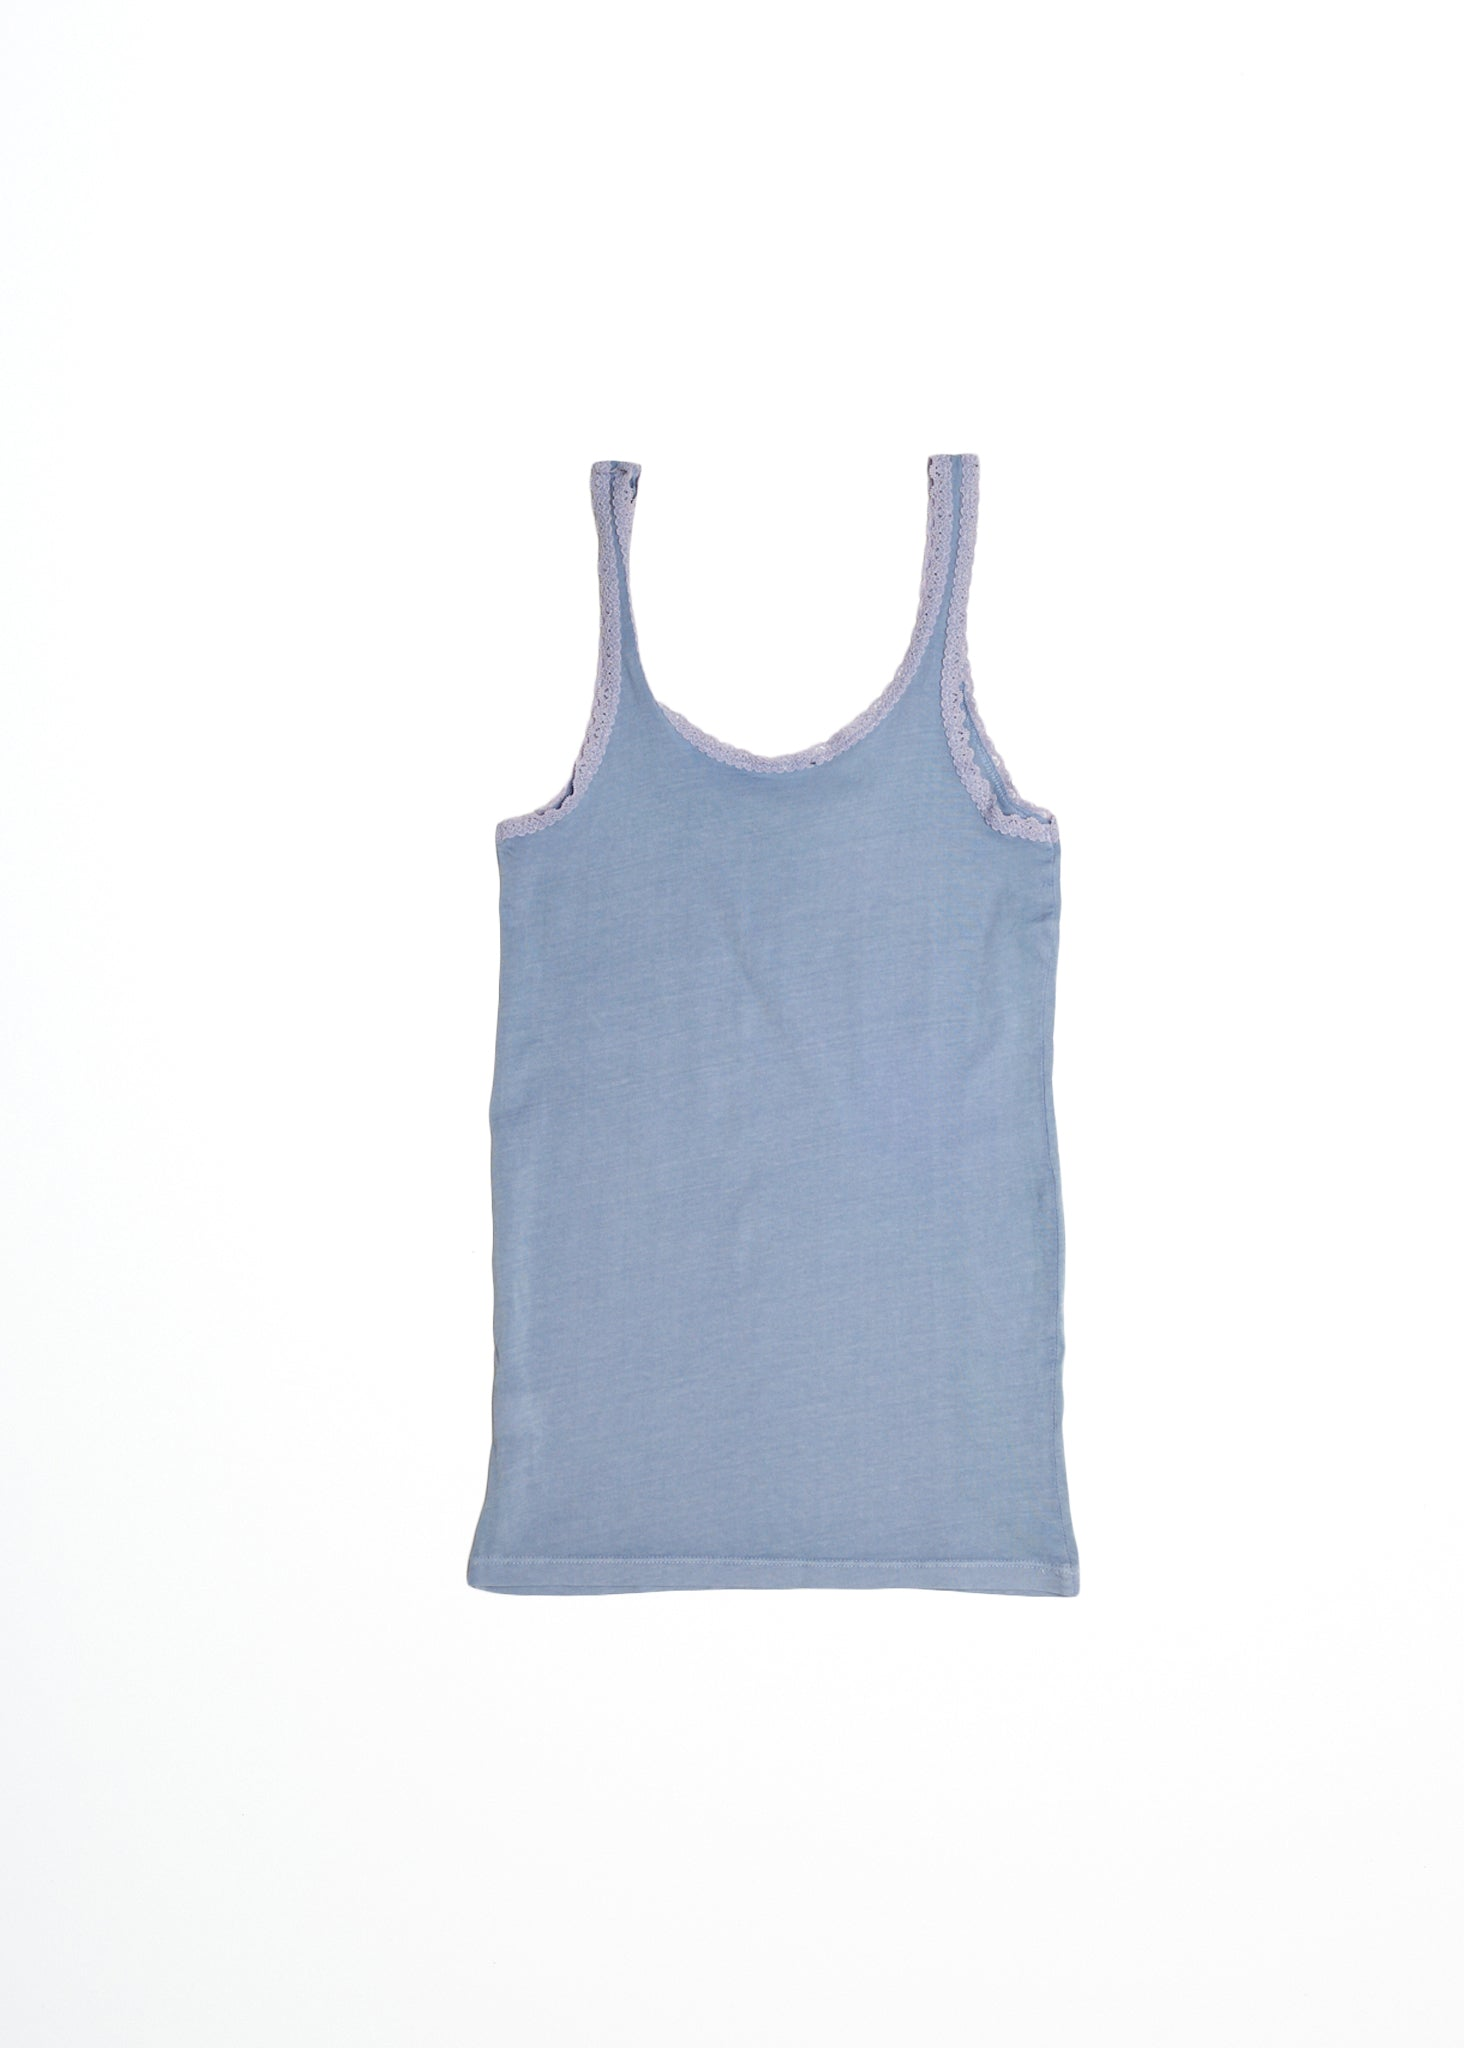 No Nukes Lace Tank - Women's Lace Tank - Midnight Rider